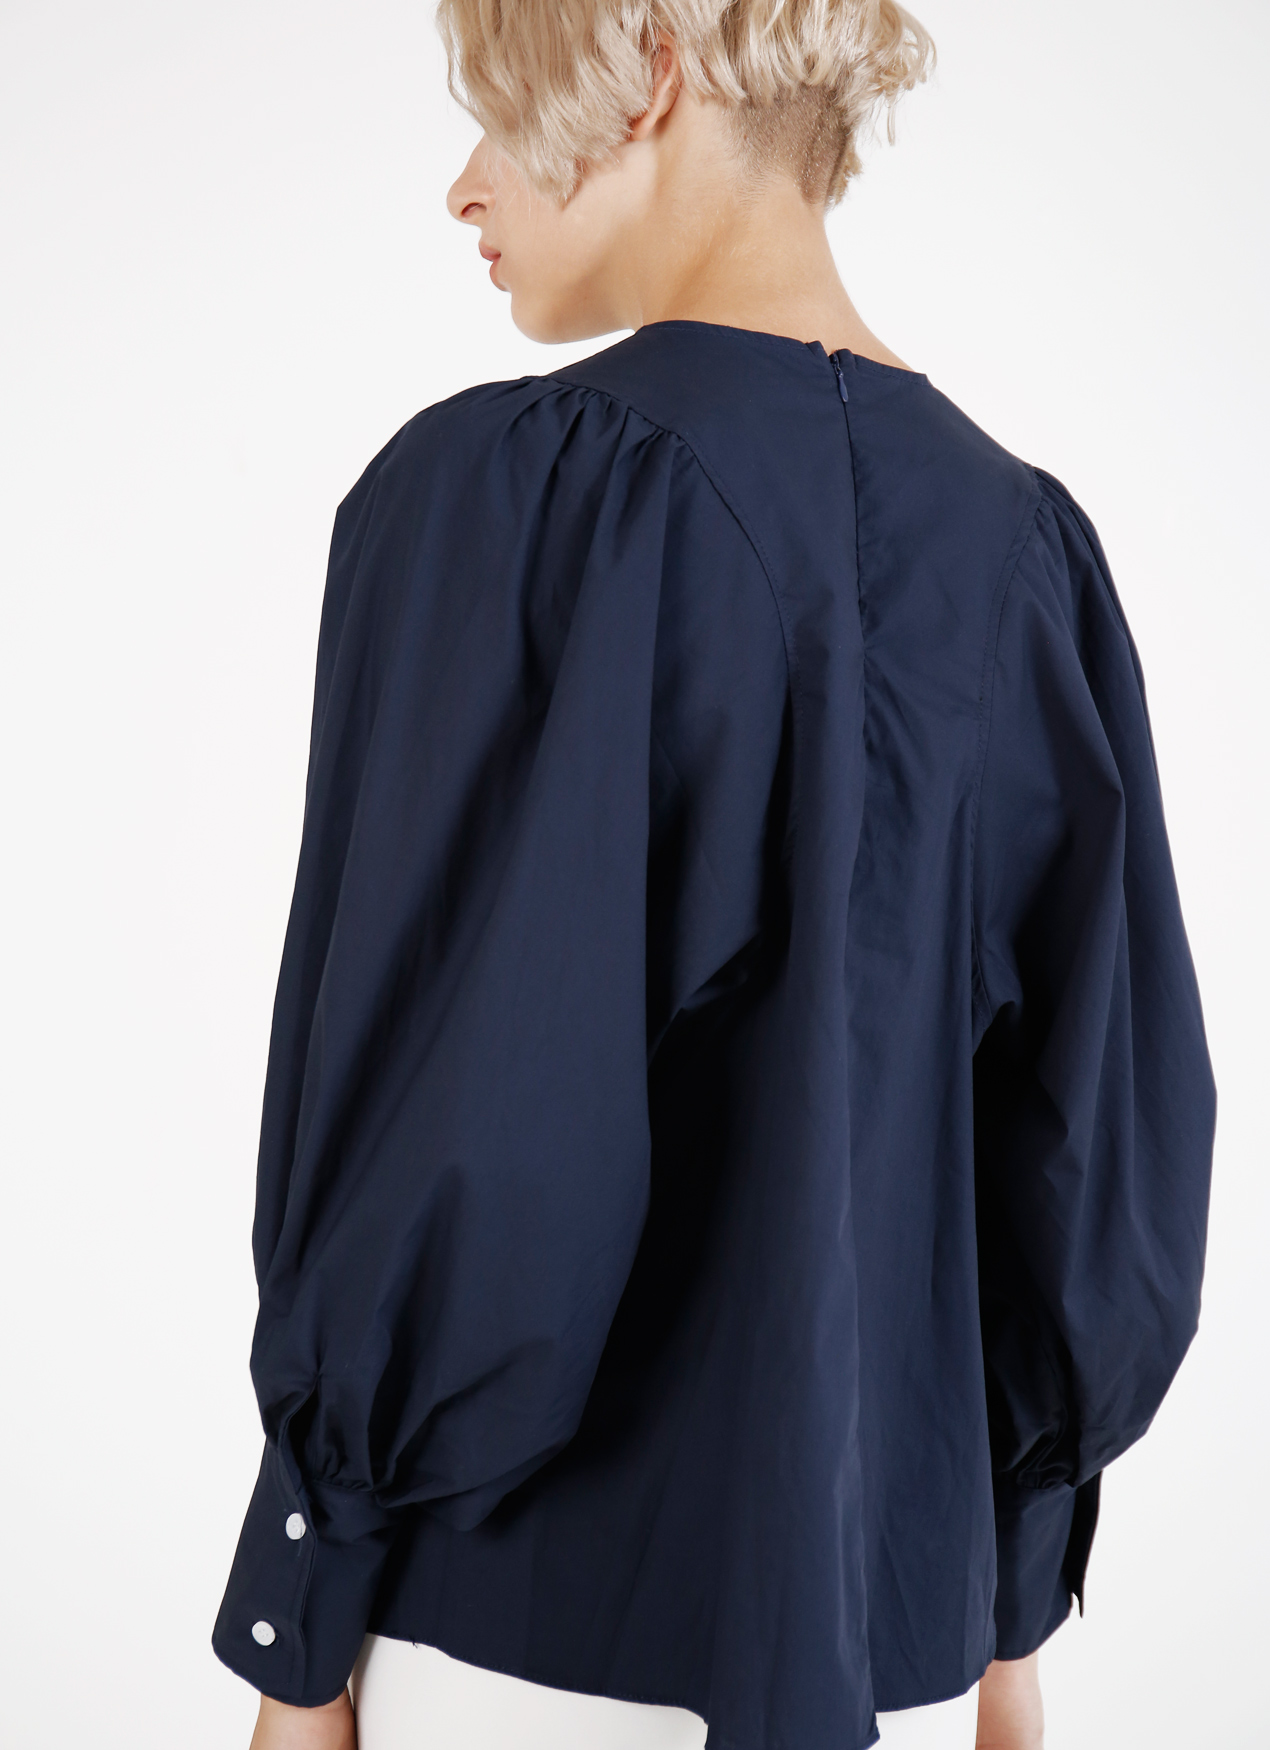 BOWN Sheila Top - Navy